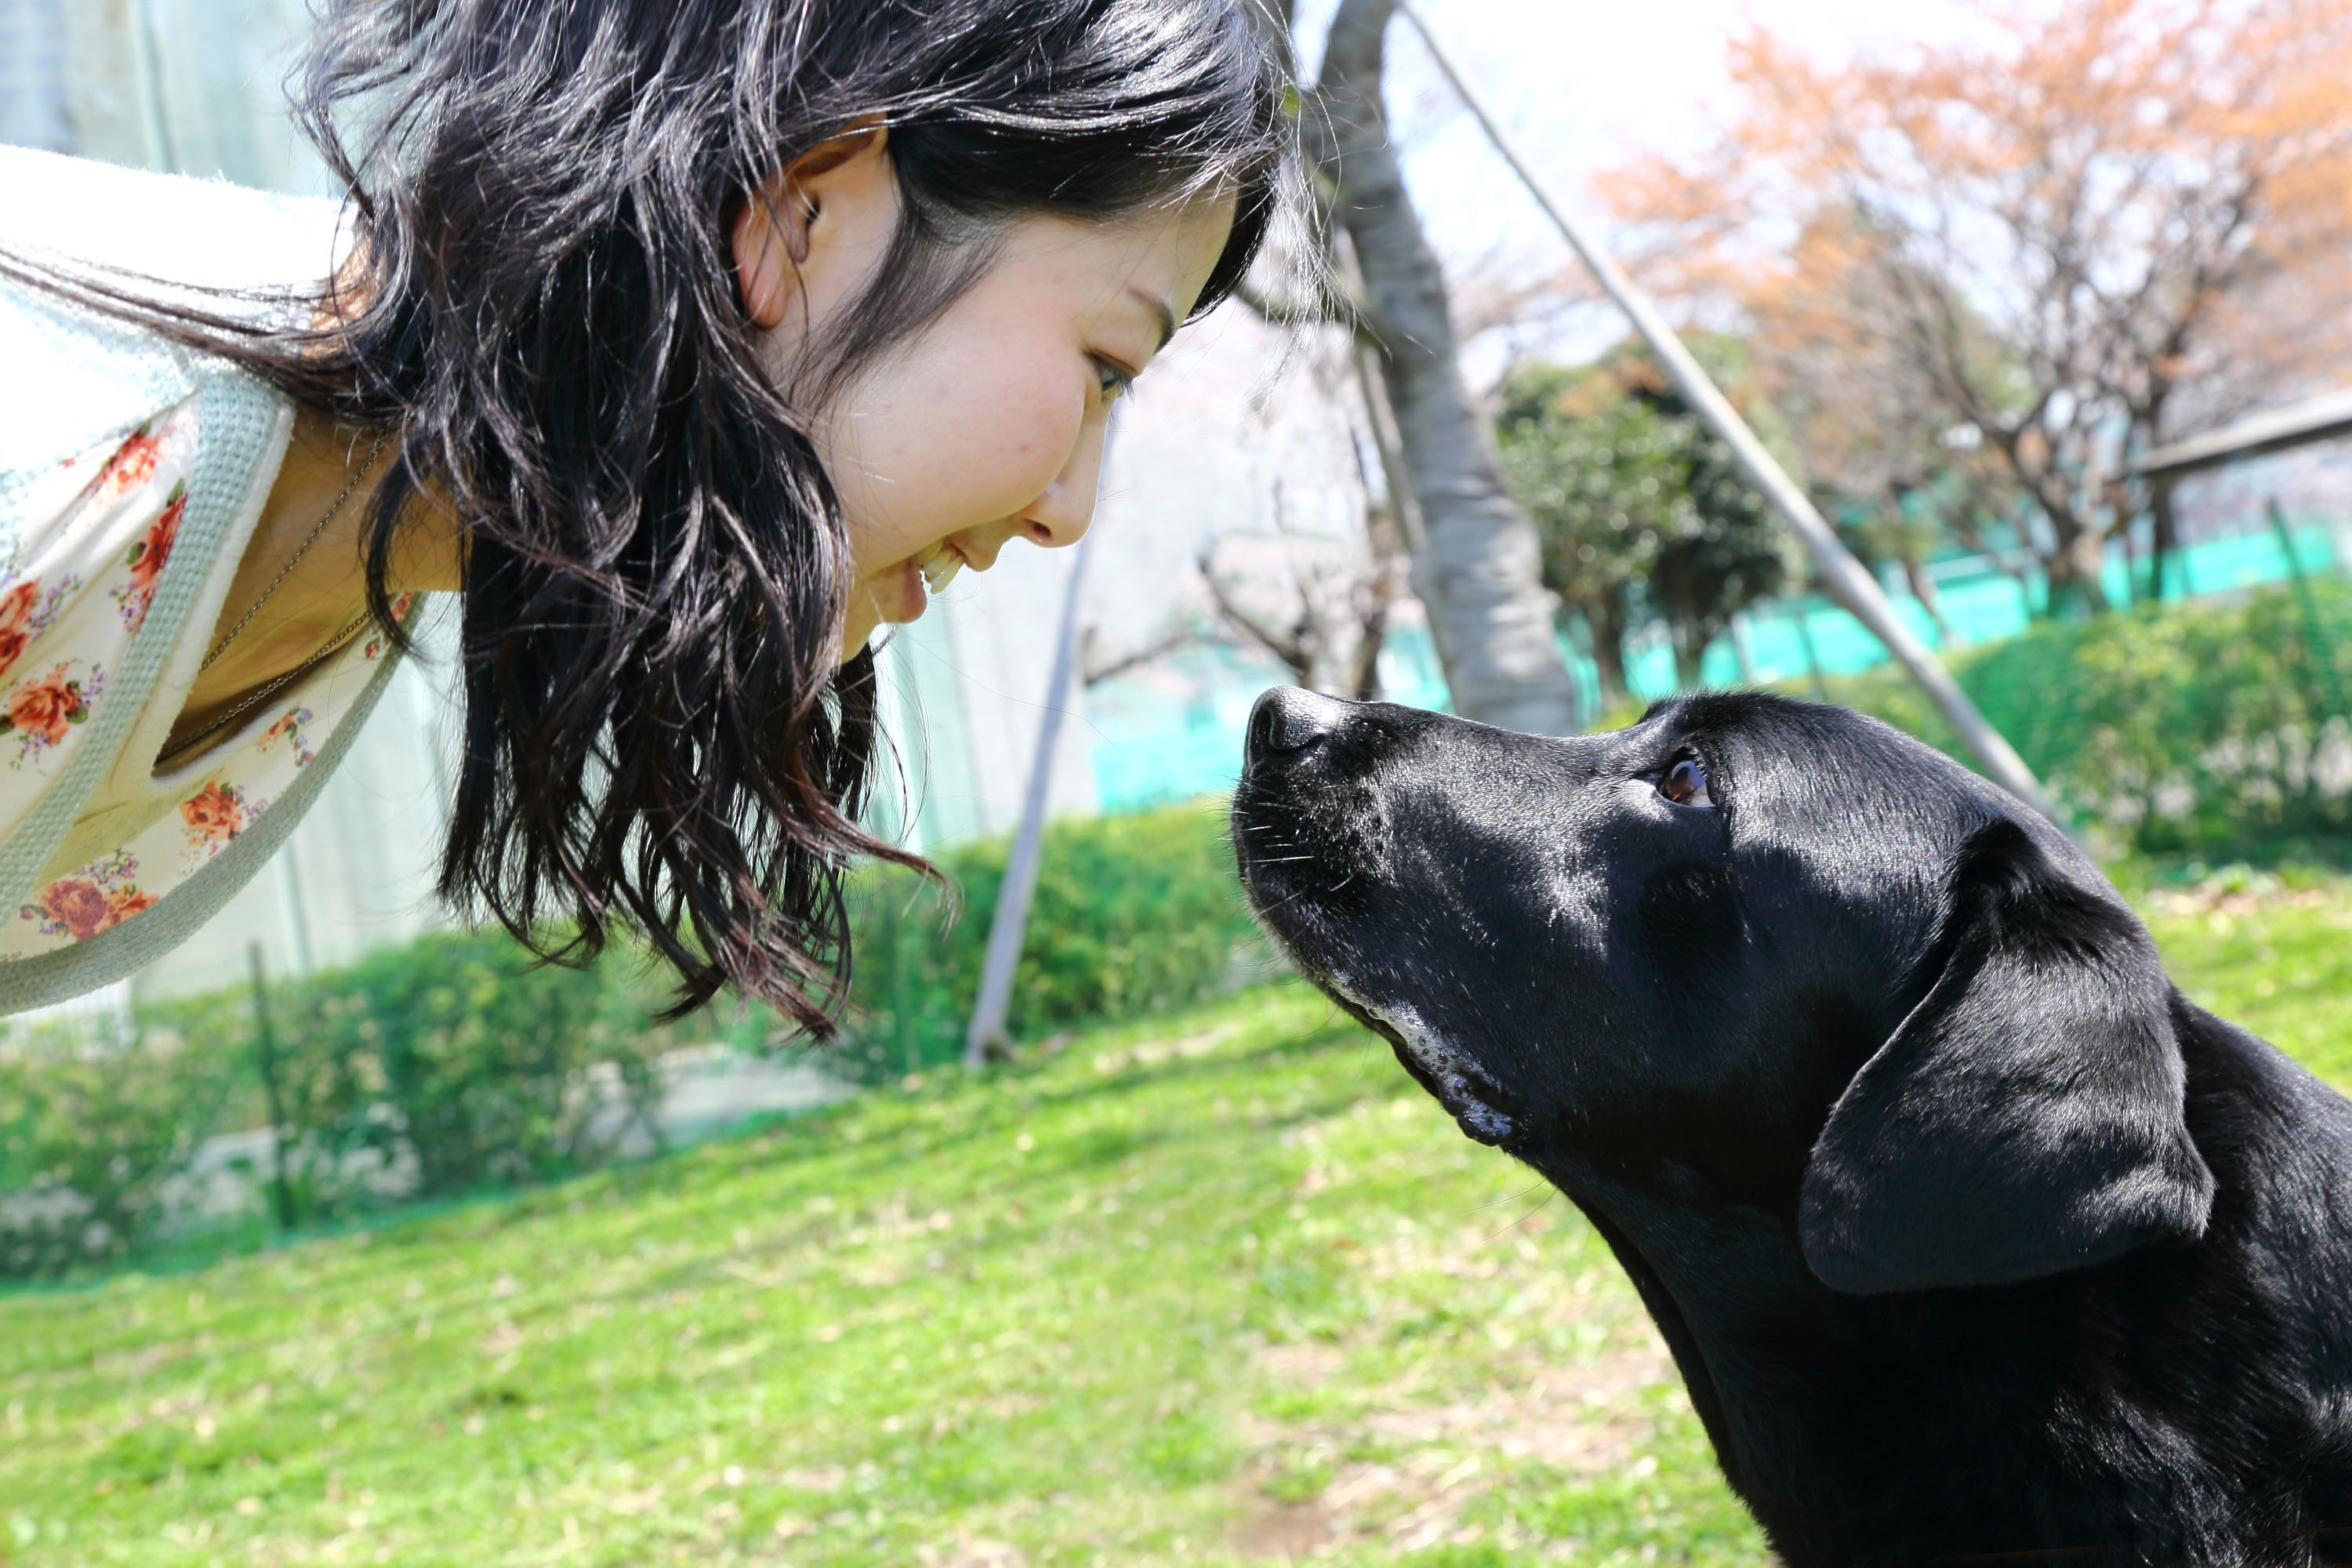 Dogs and people bond through eye contact - CBS News